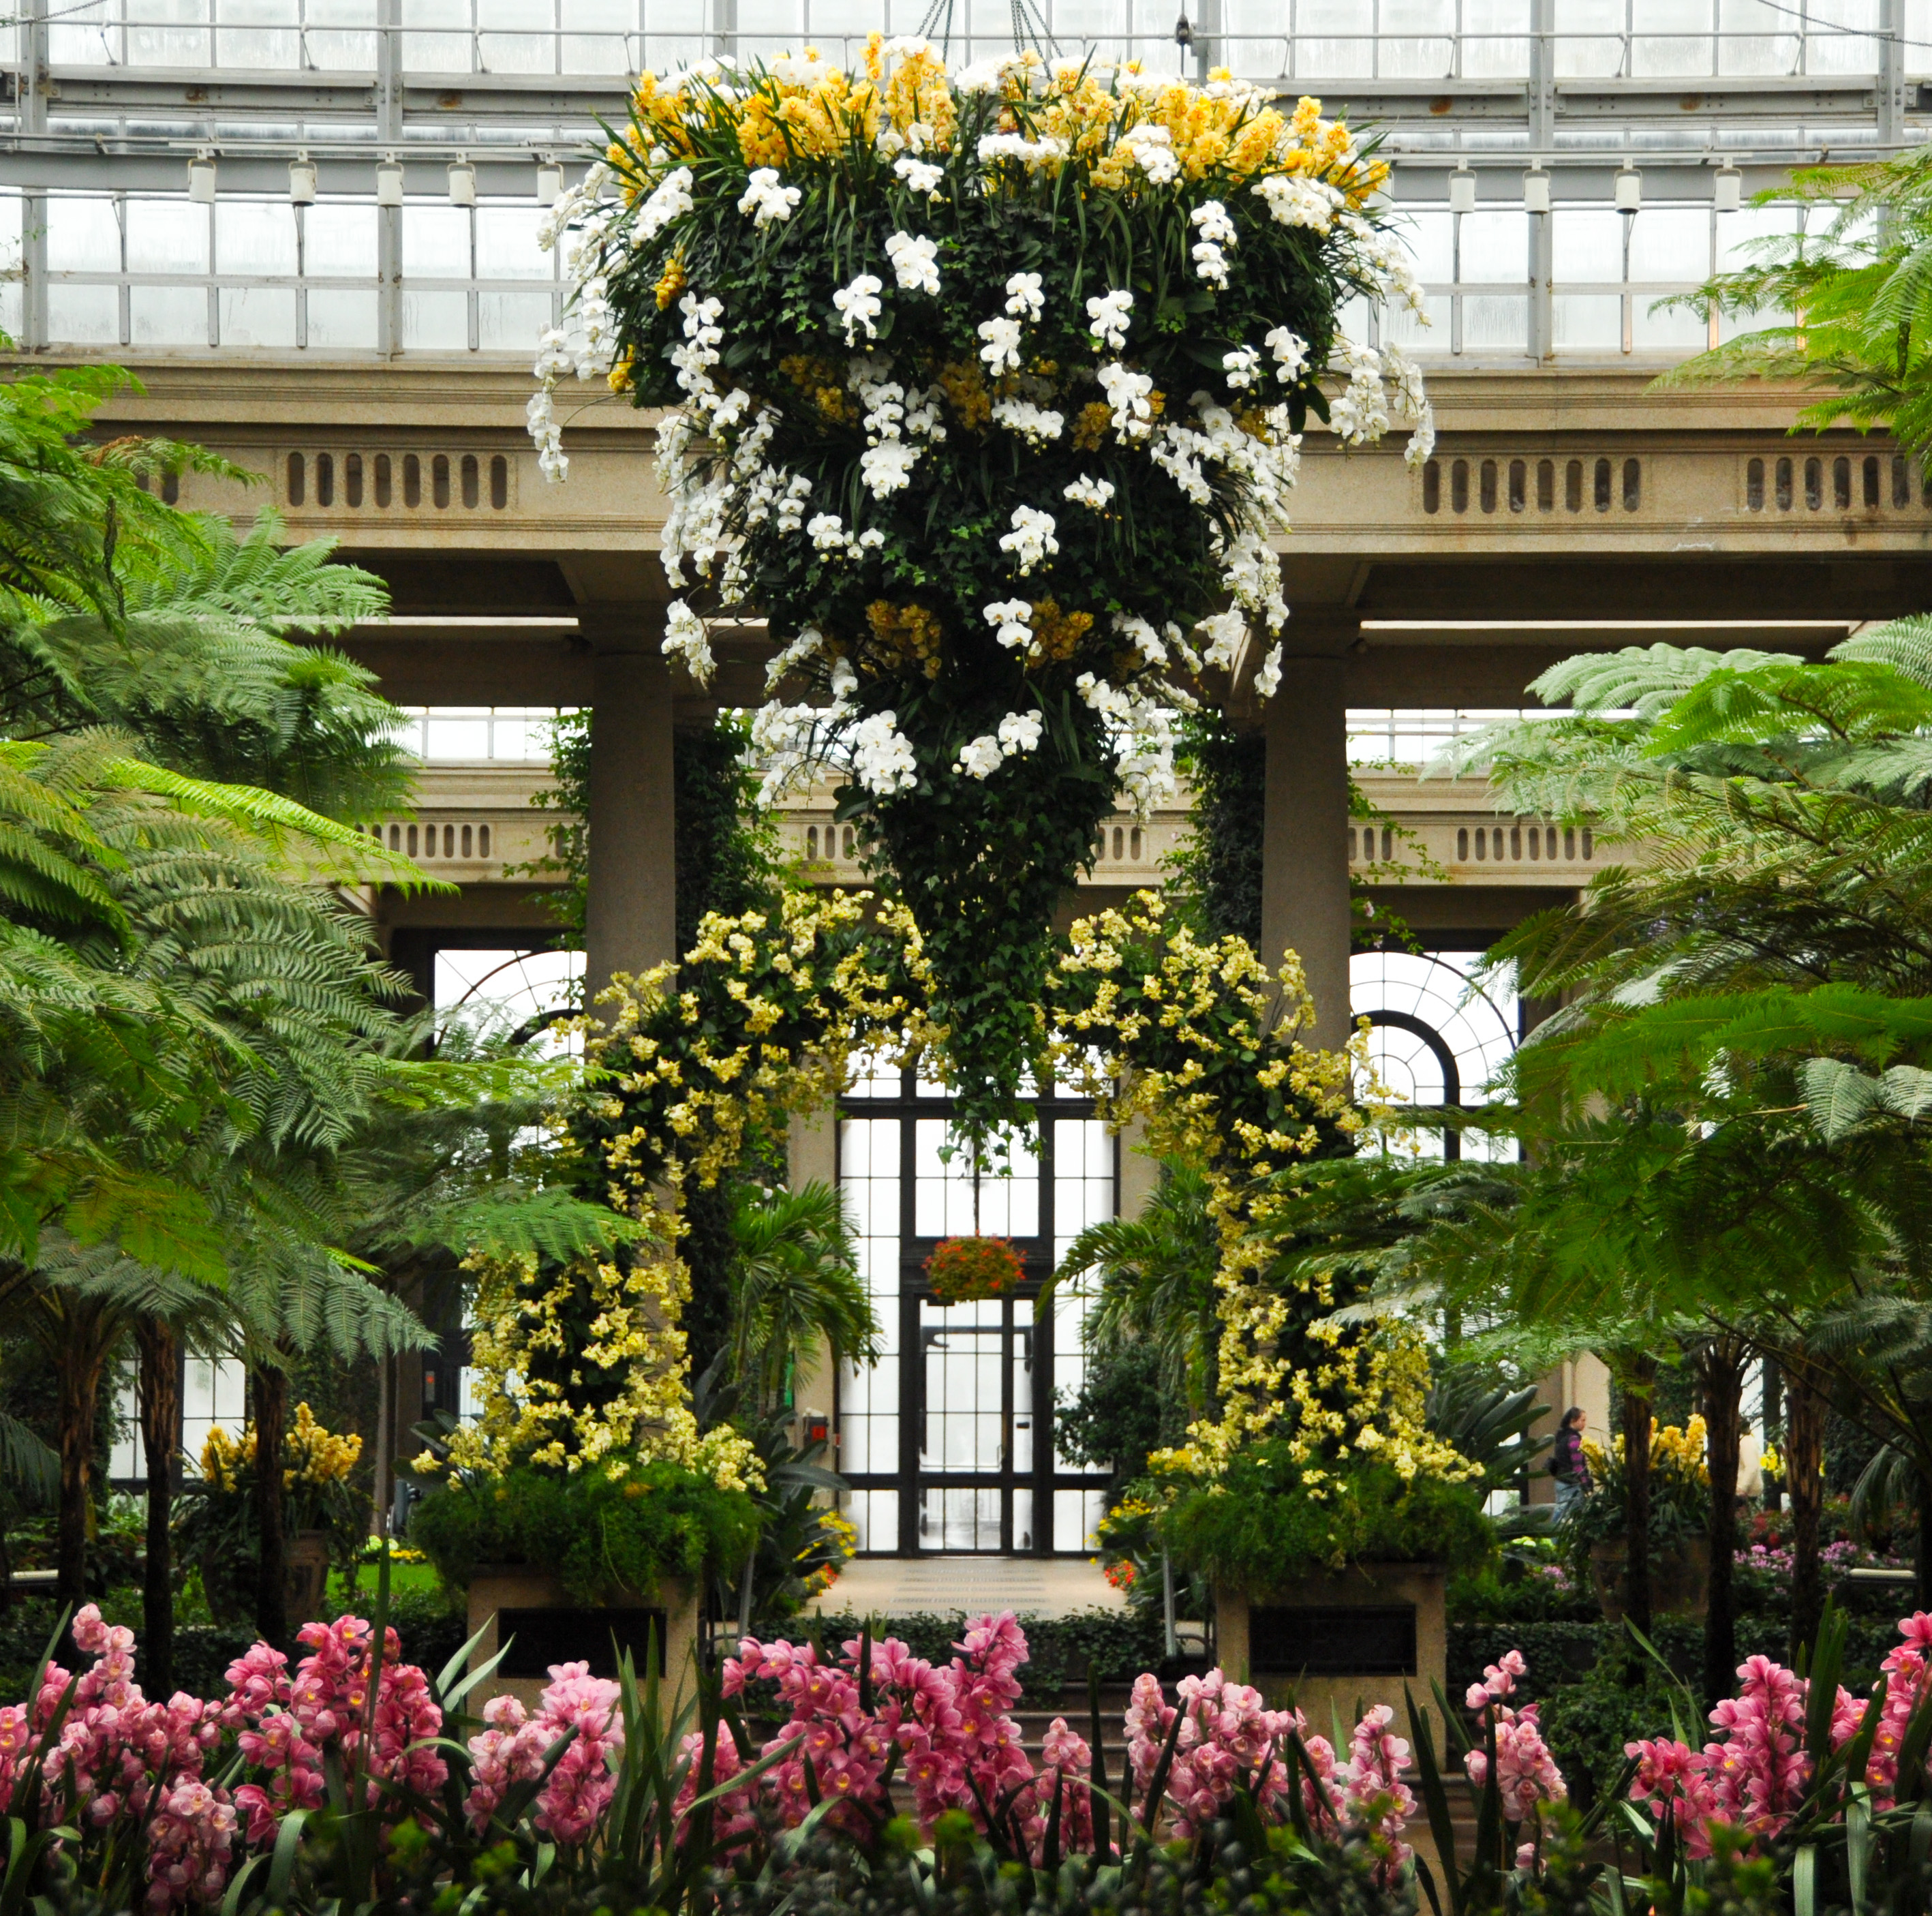 The beauty of orchid extravaganza longwood gardens behind the plants